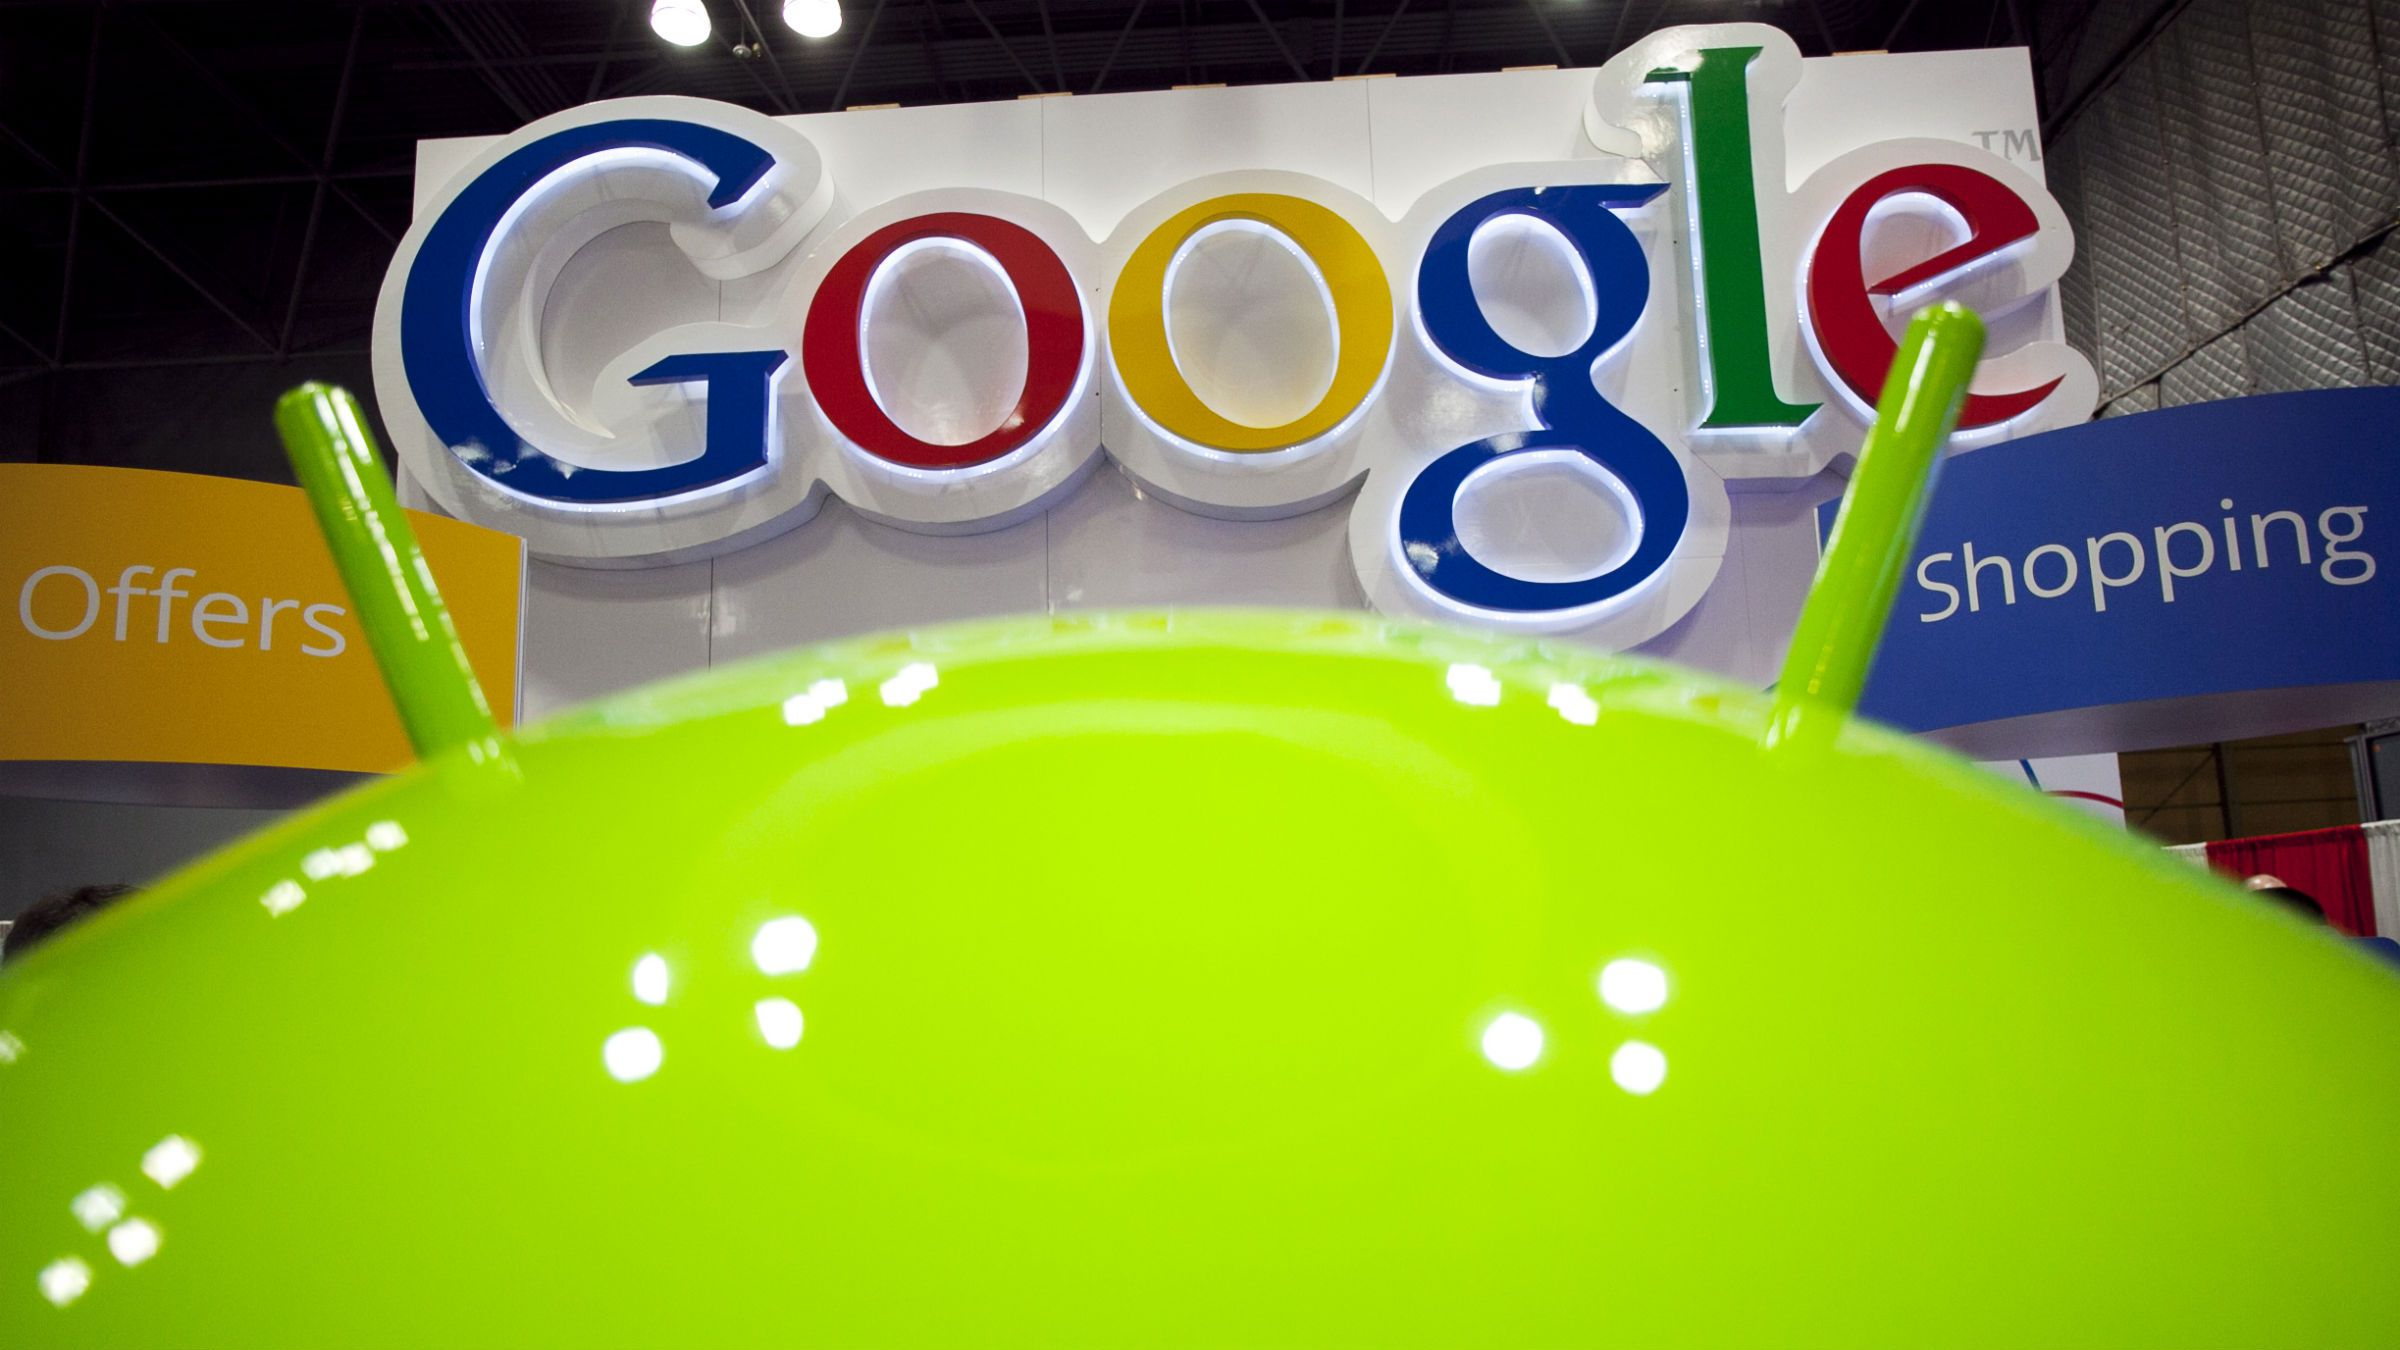 In this Jan. 17, 2012 photo, a sign for Google is displayed behind the Google android robot, at the National Retail Federation, in New York. Google Inc., releases quarterly financial results Thursday, Jan. 19, 2012, after the market close. (AP Photo/Mark Lennihan)